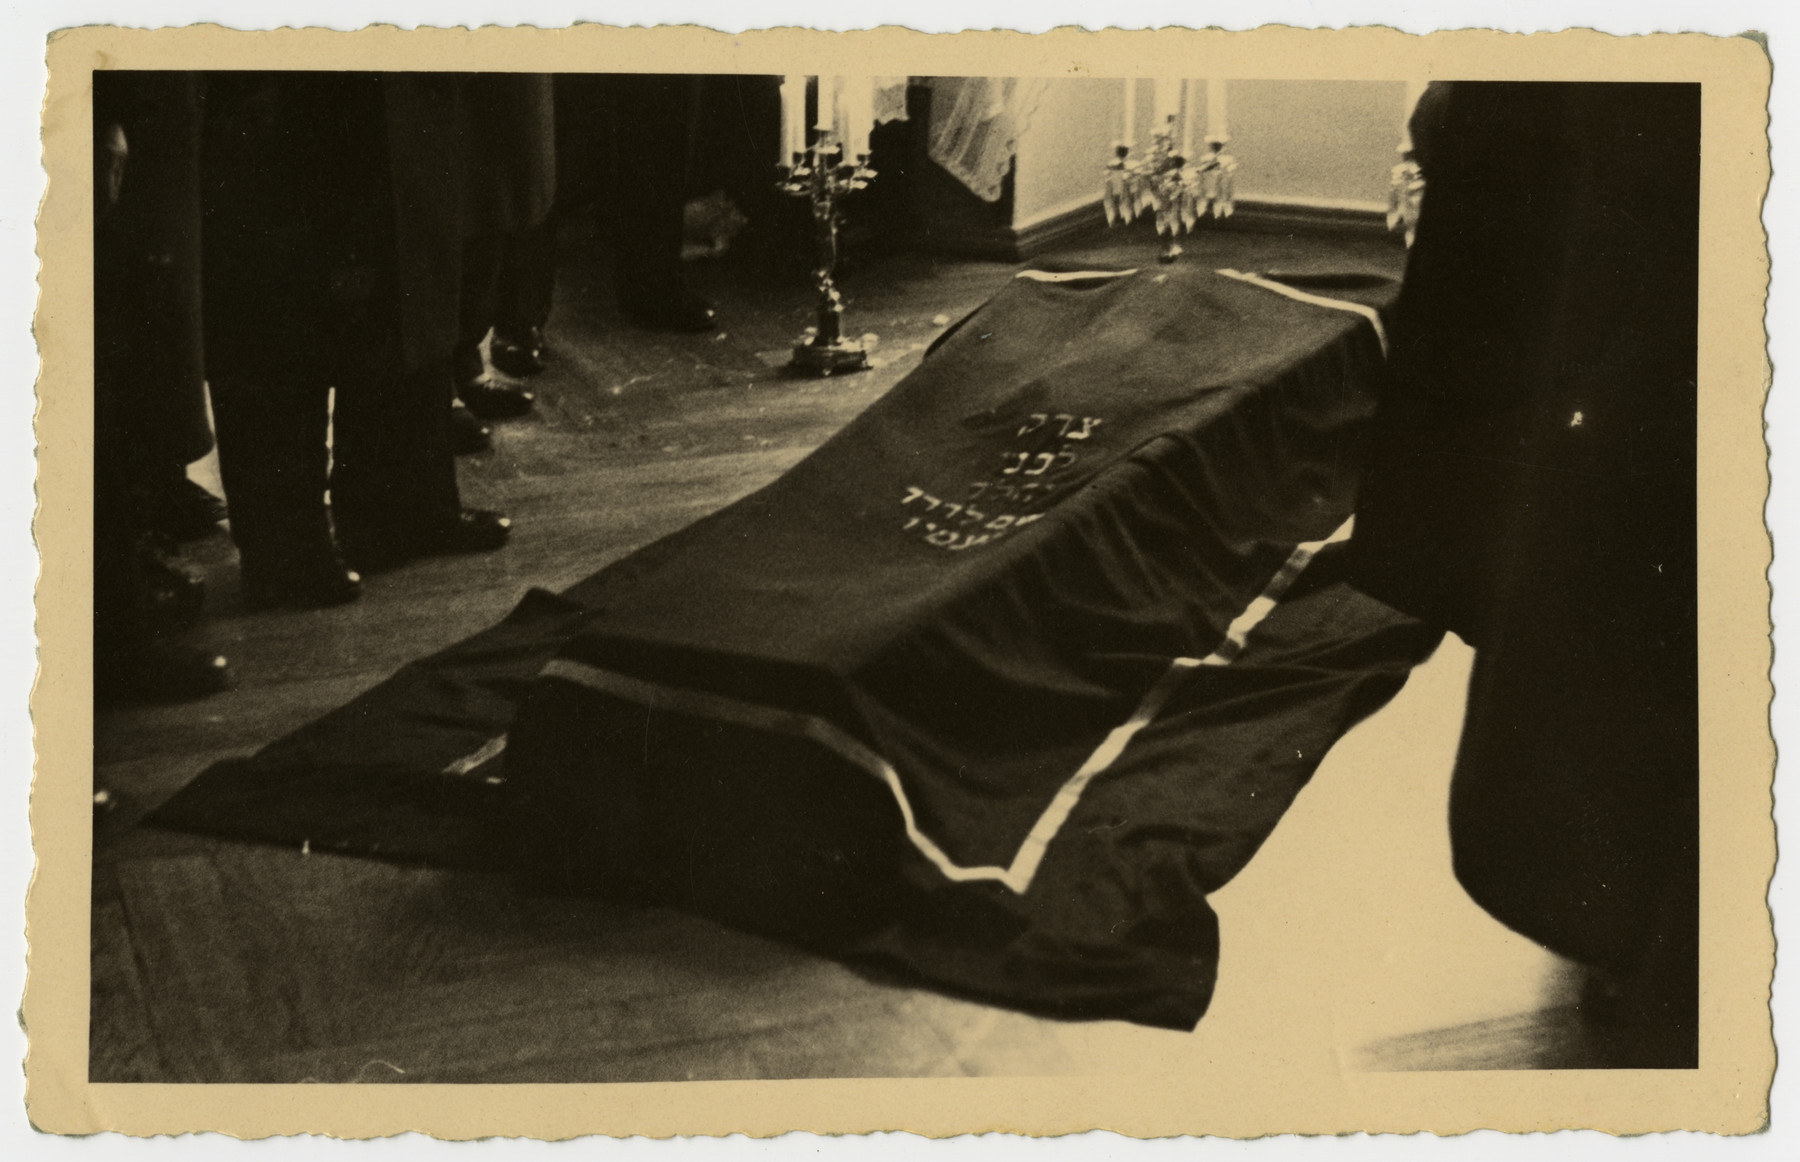 The body of Freida Albin lies in state prior to the funeral.